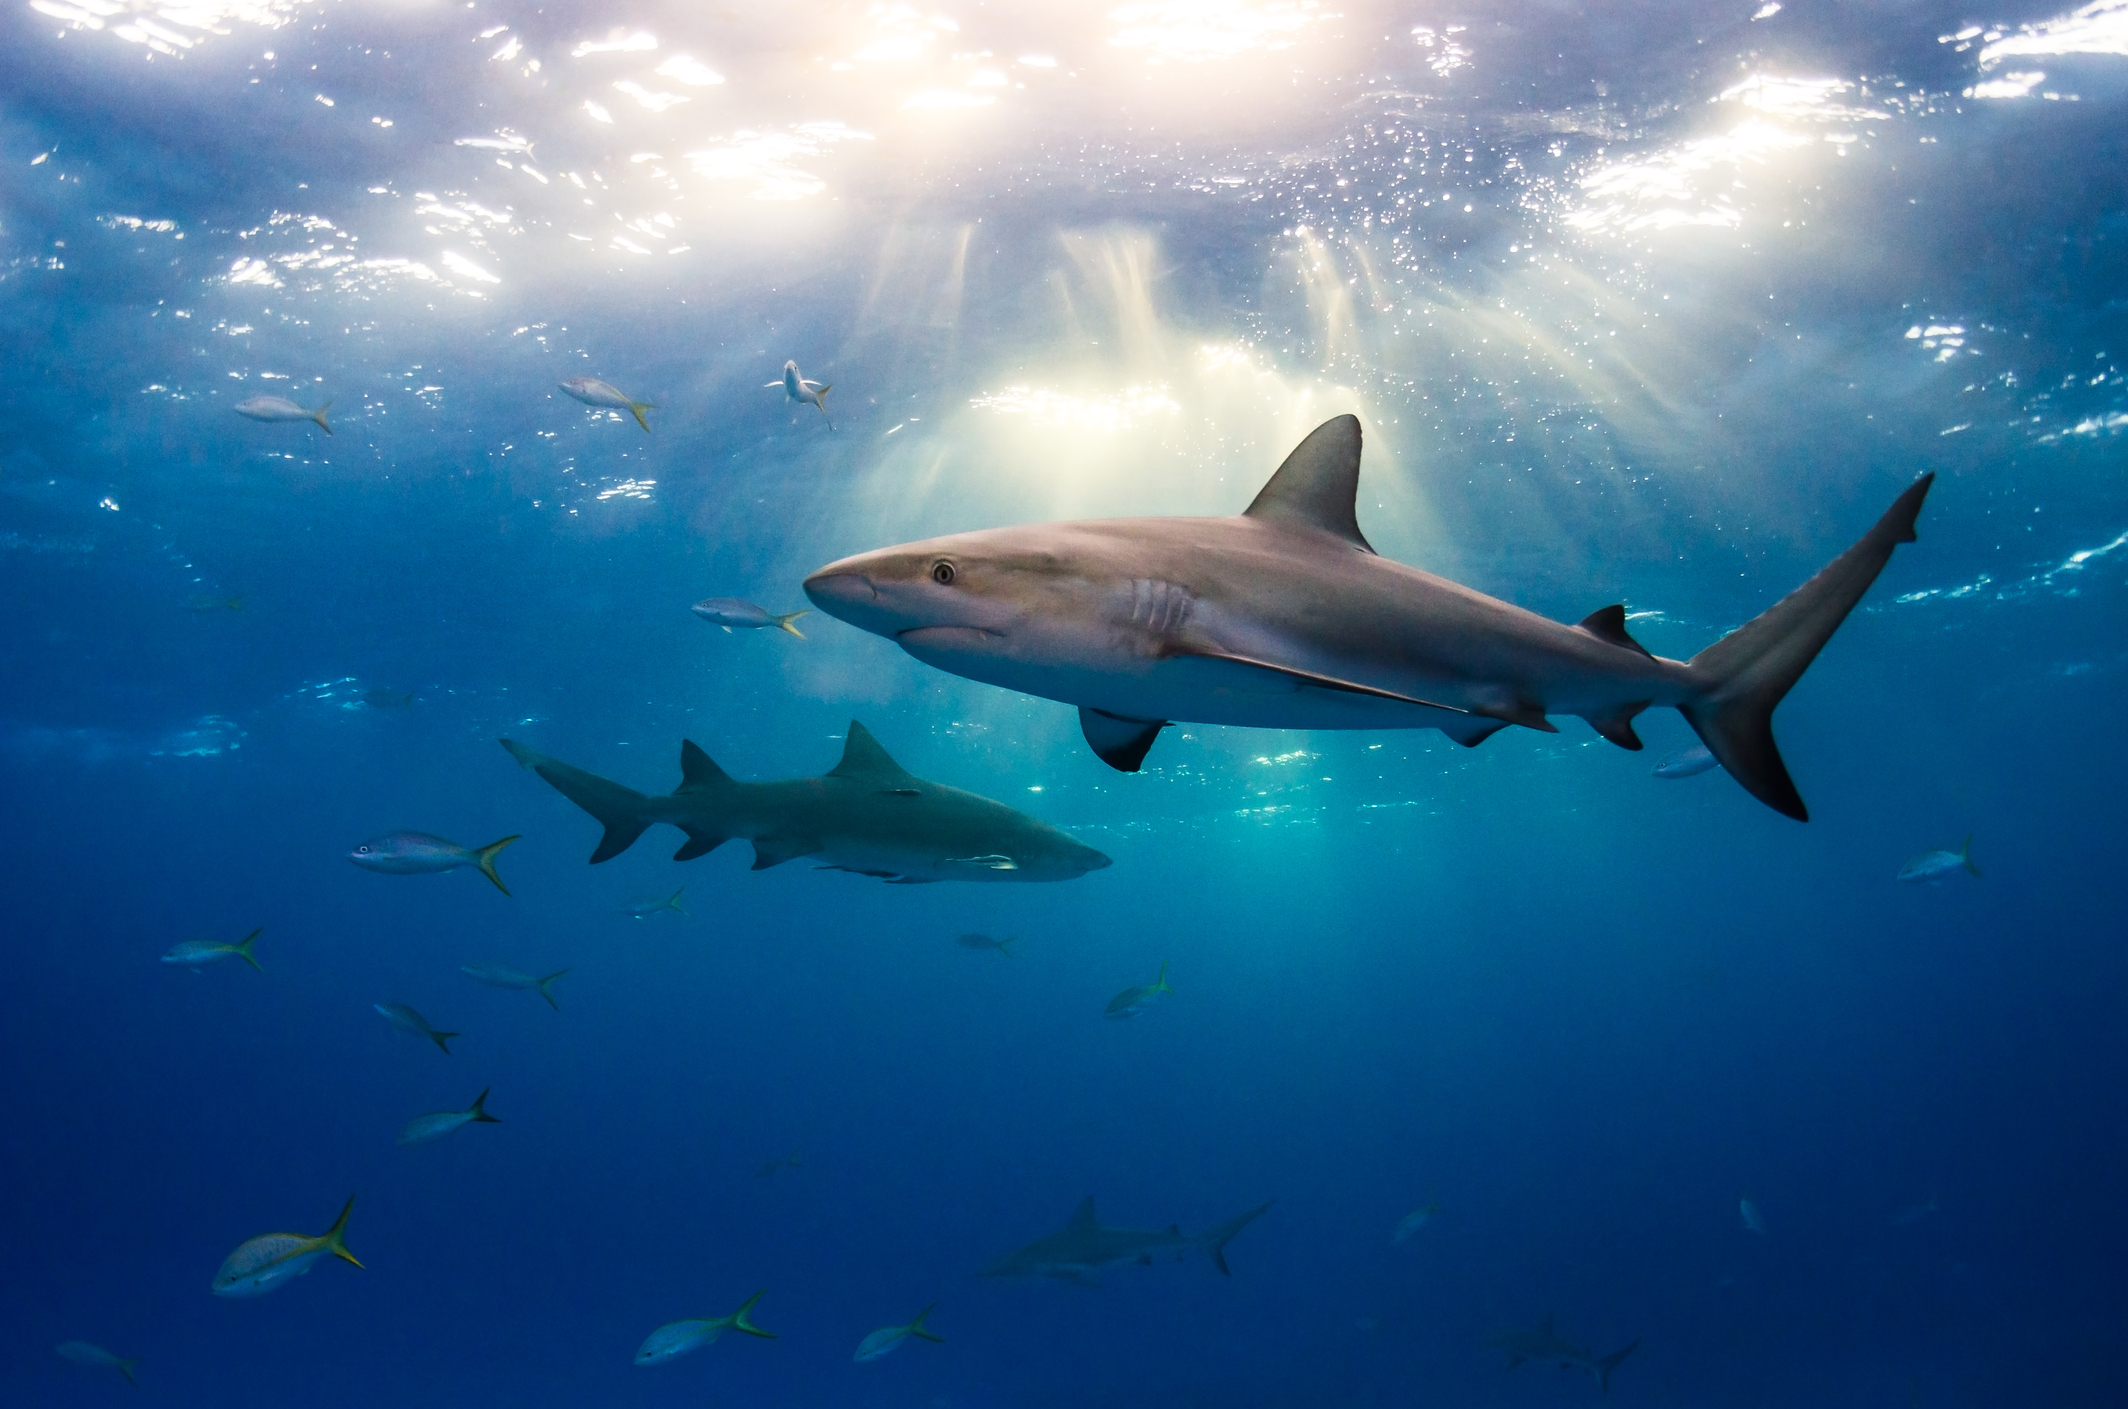 Sharks aren't the monsters they're portrayed as – but we're monsters for hunting them